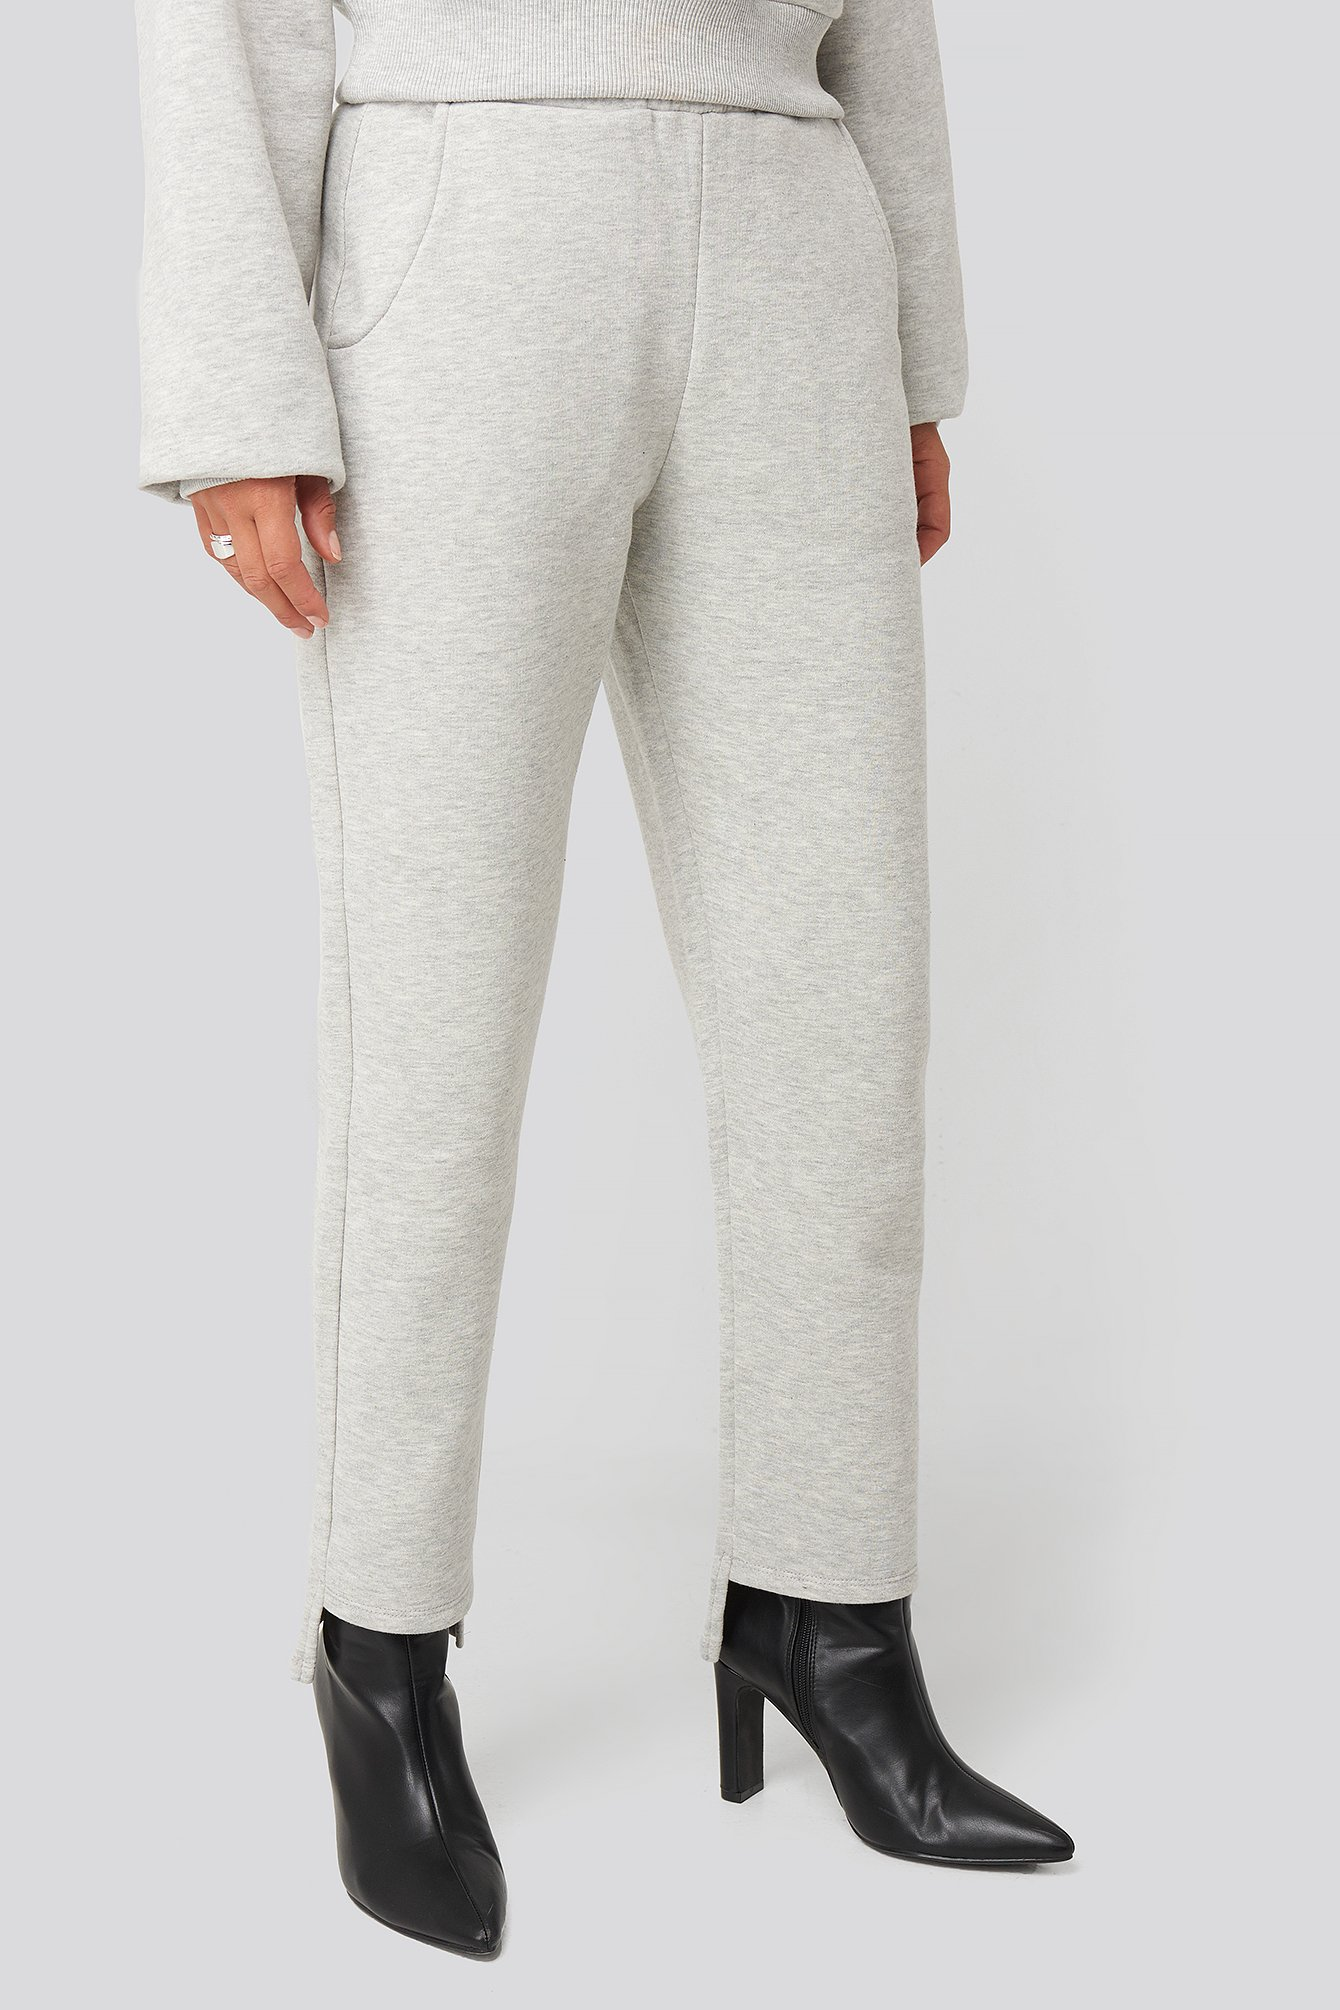 Grey Elastic Waist Sweatpants